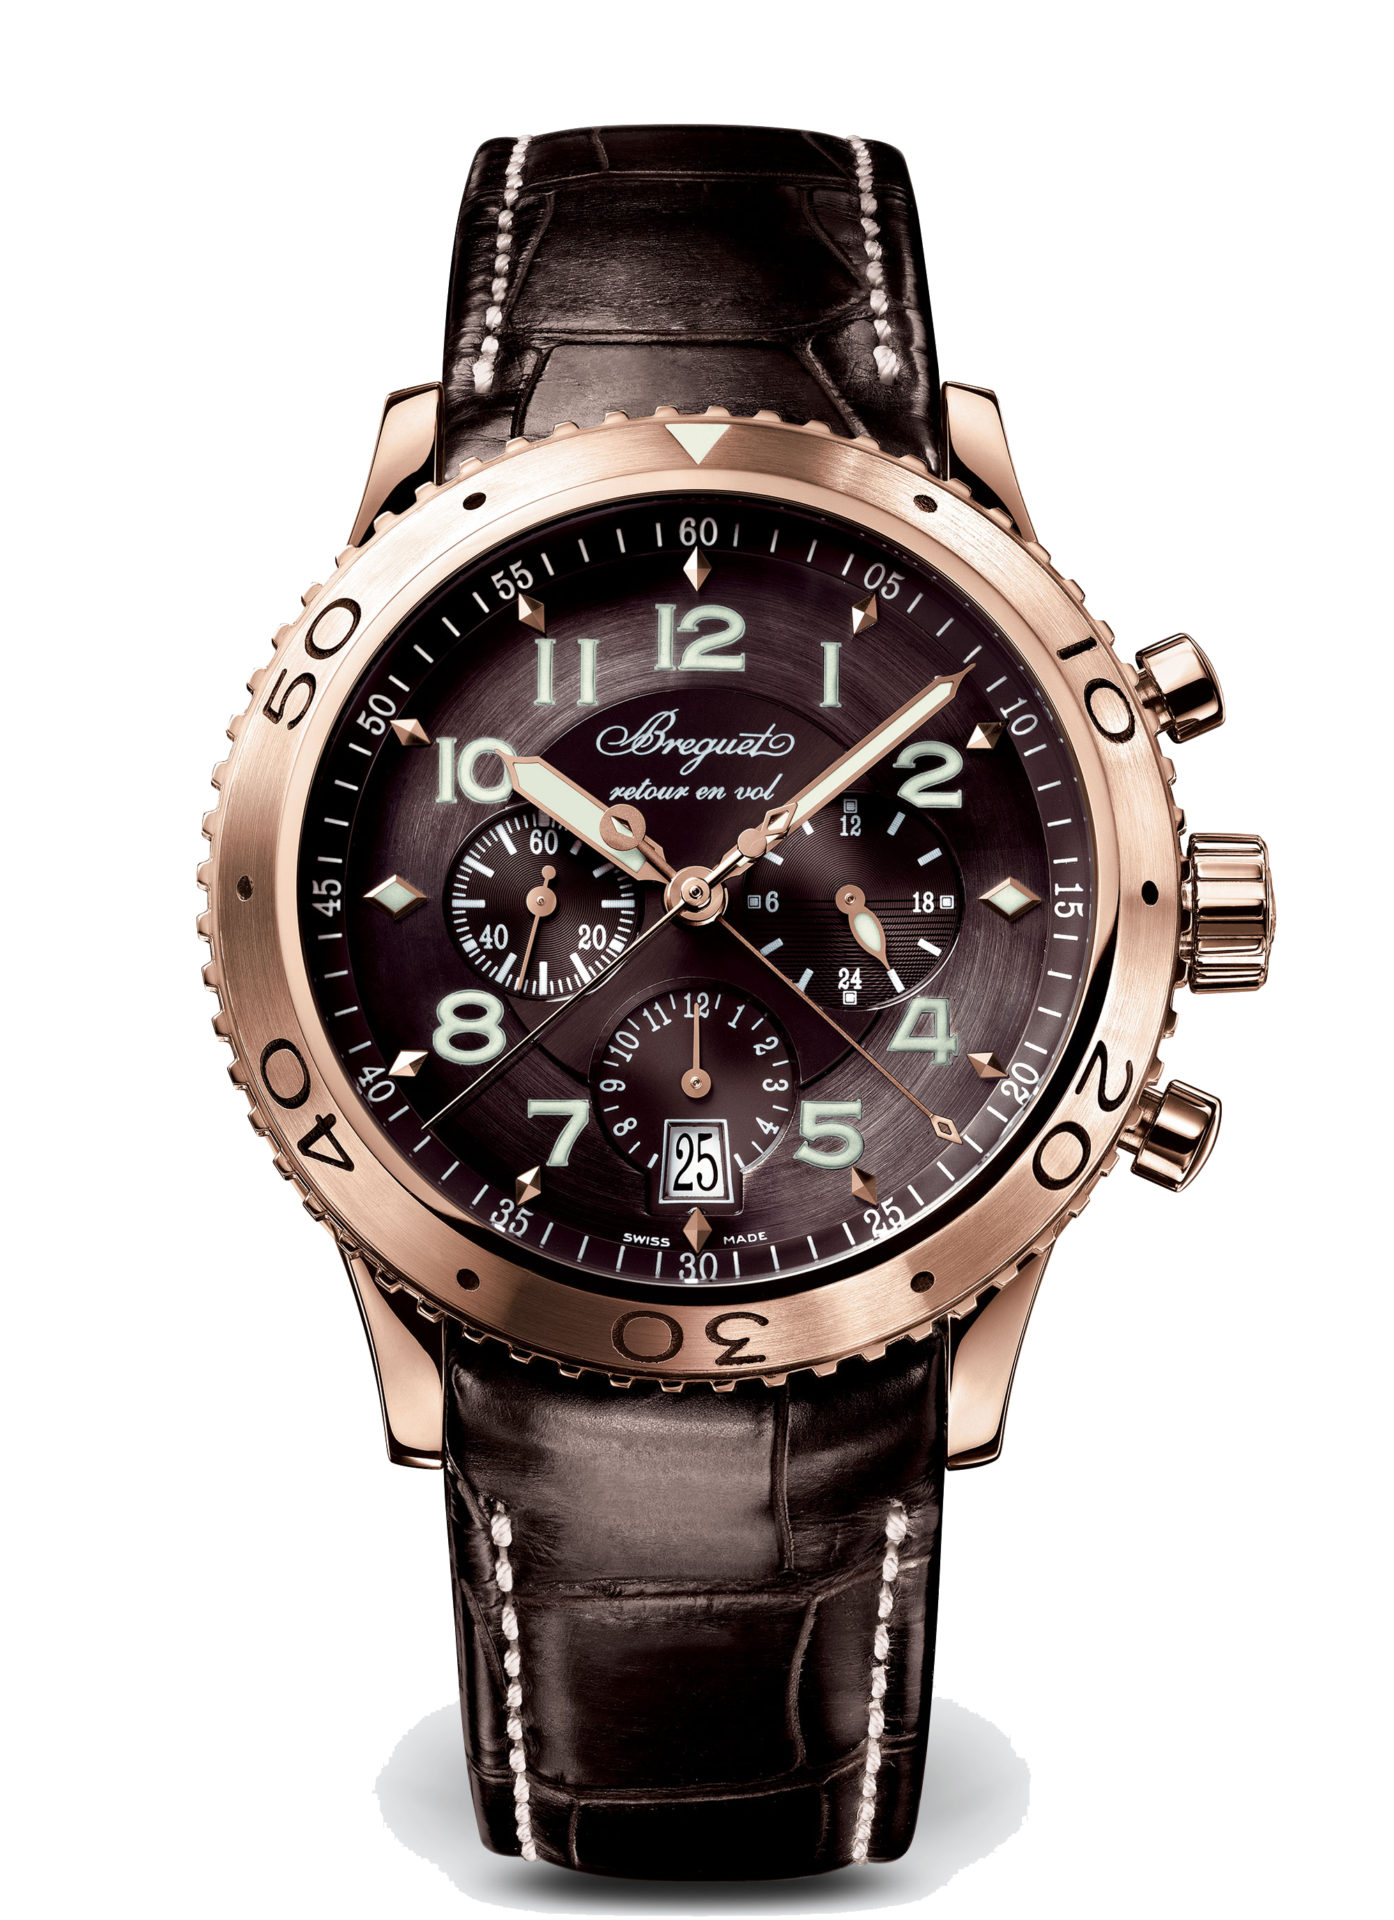 Breguet-Type-XX-XXI-XXII-3810-Hall-of-Time-3810br-92-9zu